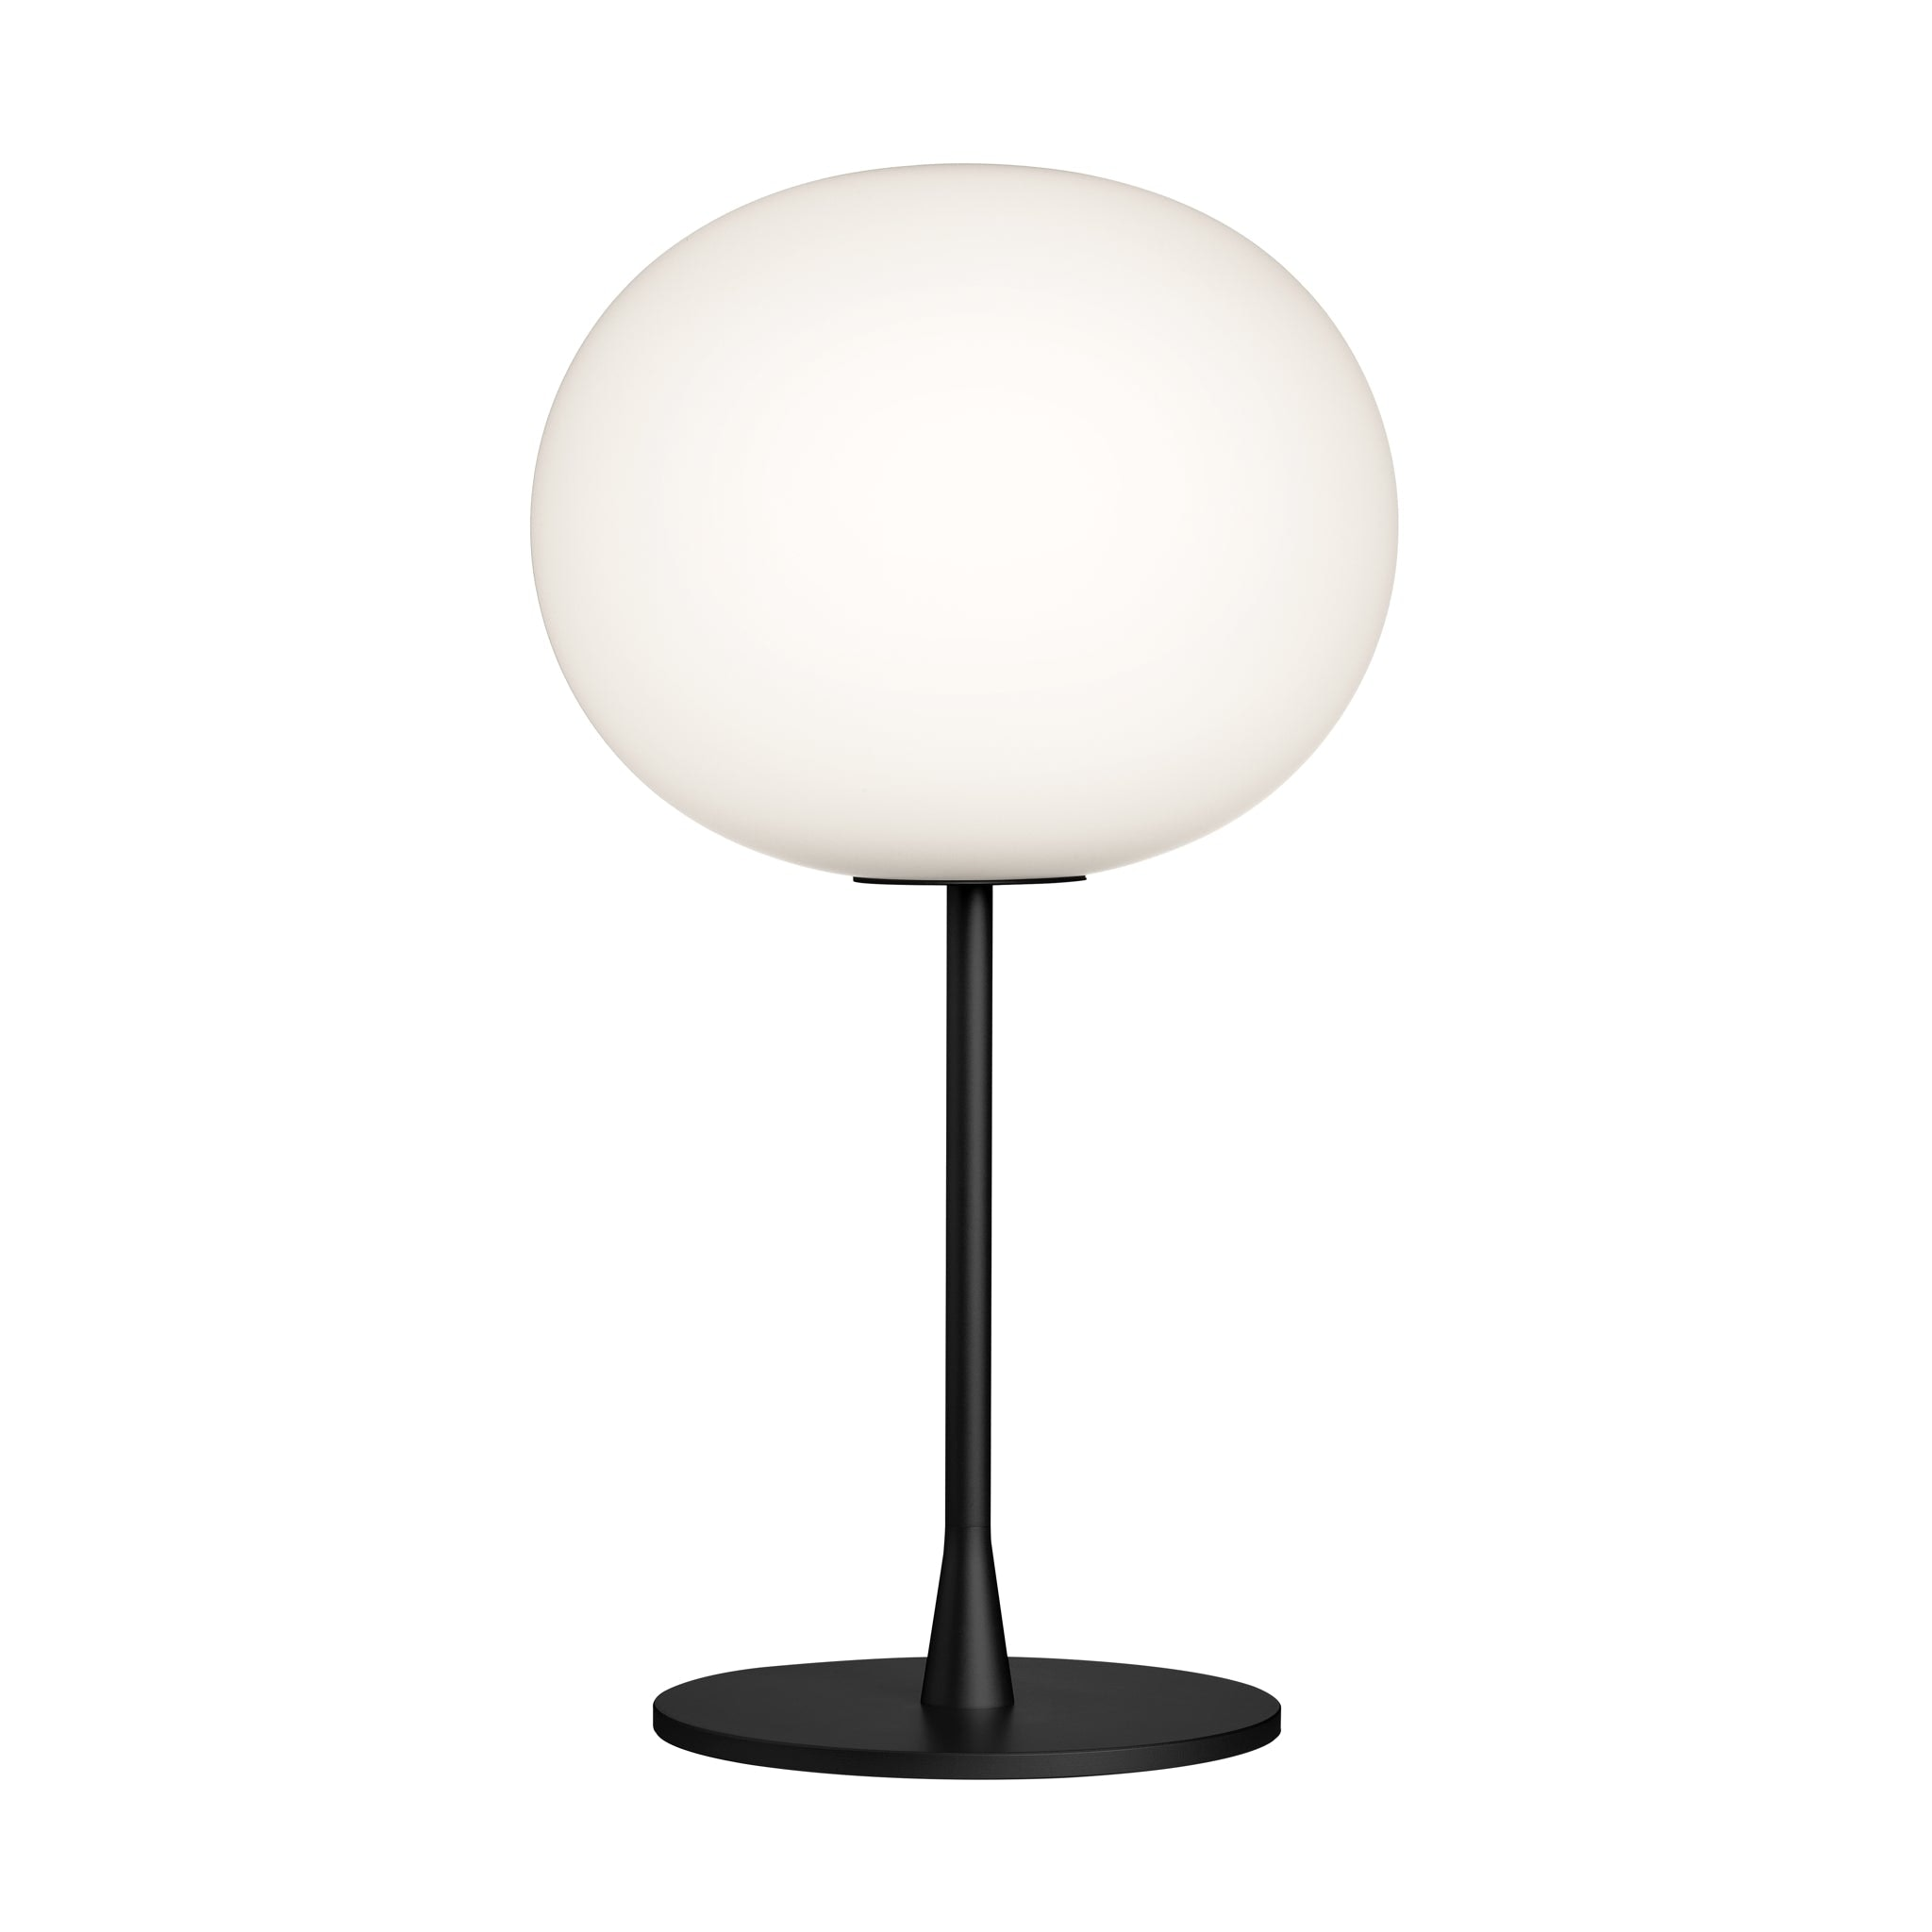 Glo Ball Matt Black Table Lamp by Flos